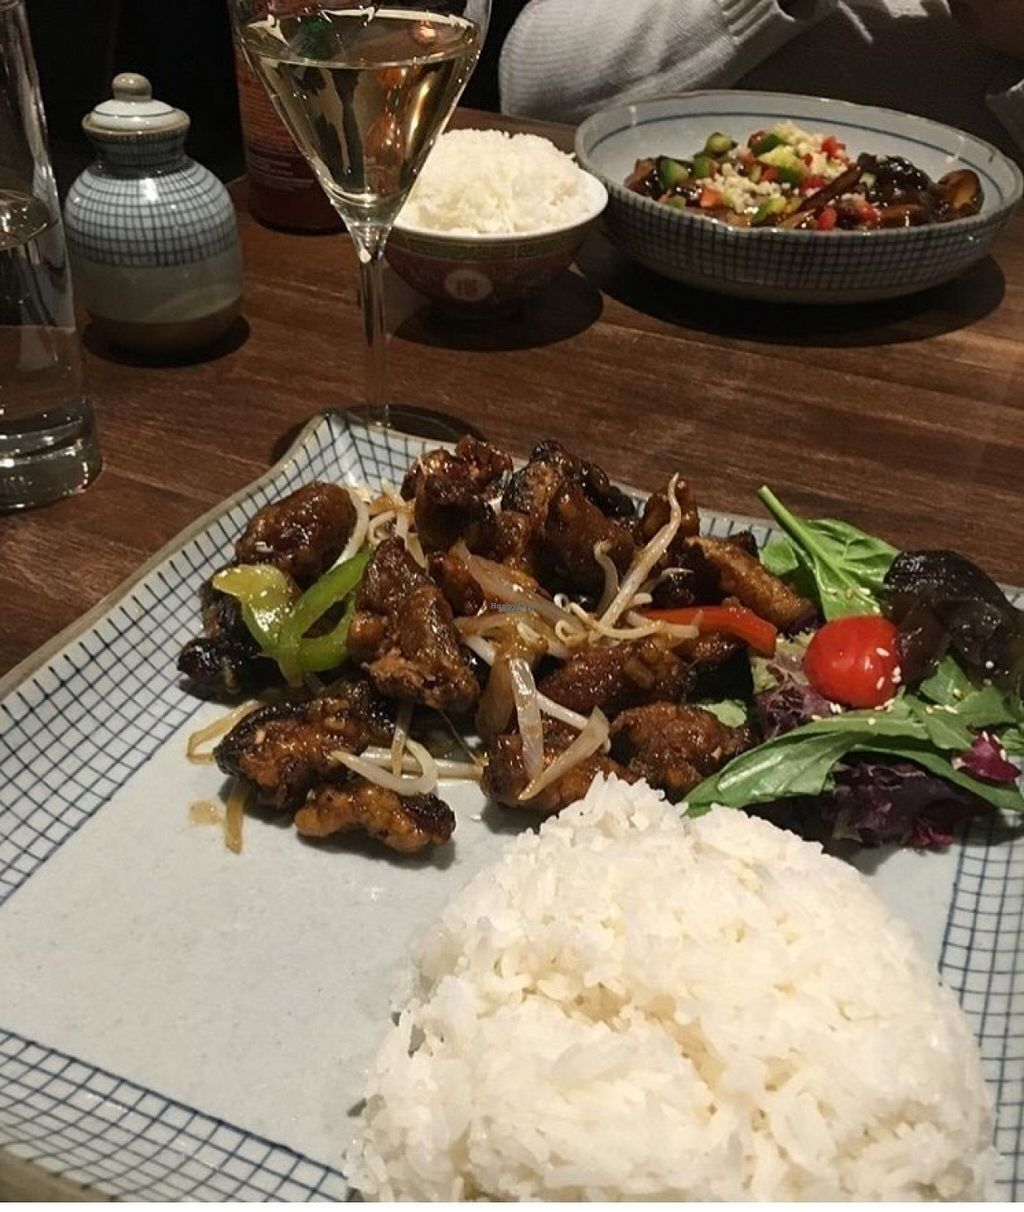 """Photo of Odd Couple  by <a href=""""/members/profile/wildflowerc"""">wildflowerc</a> <br/>vegan ginger mushrooms & rice  <br/> August 4, 2016  - <a href='/contact/abuse/image/67414/165387'>Report</a>"""